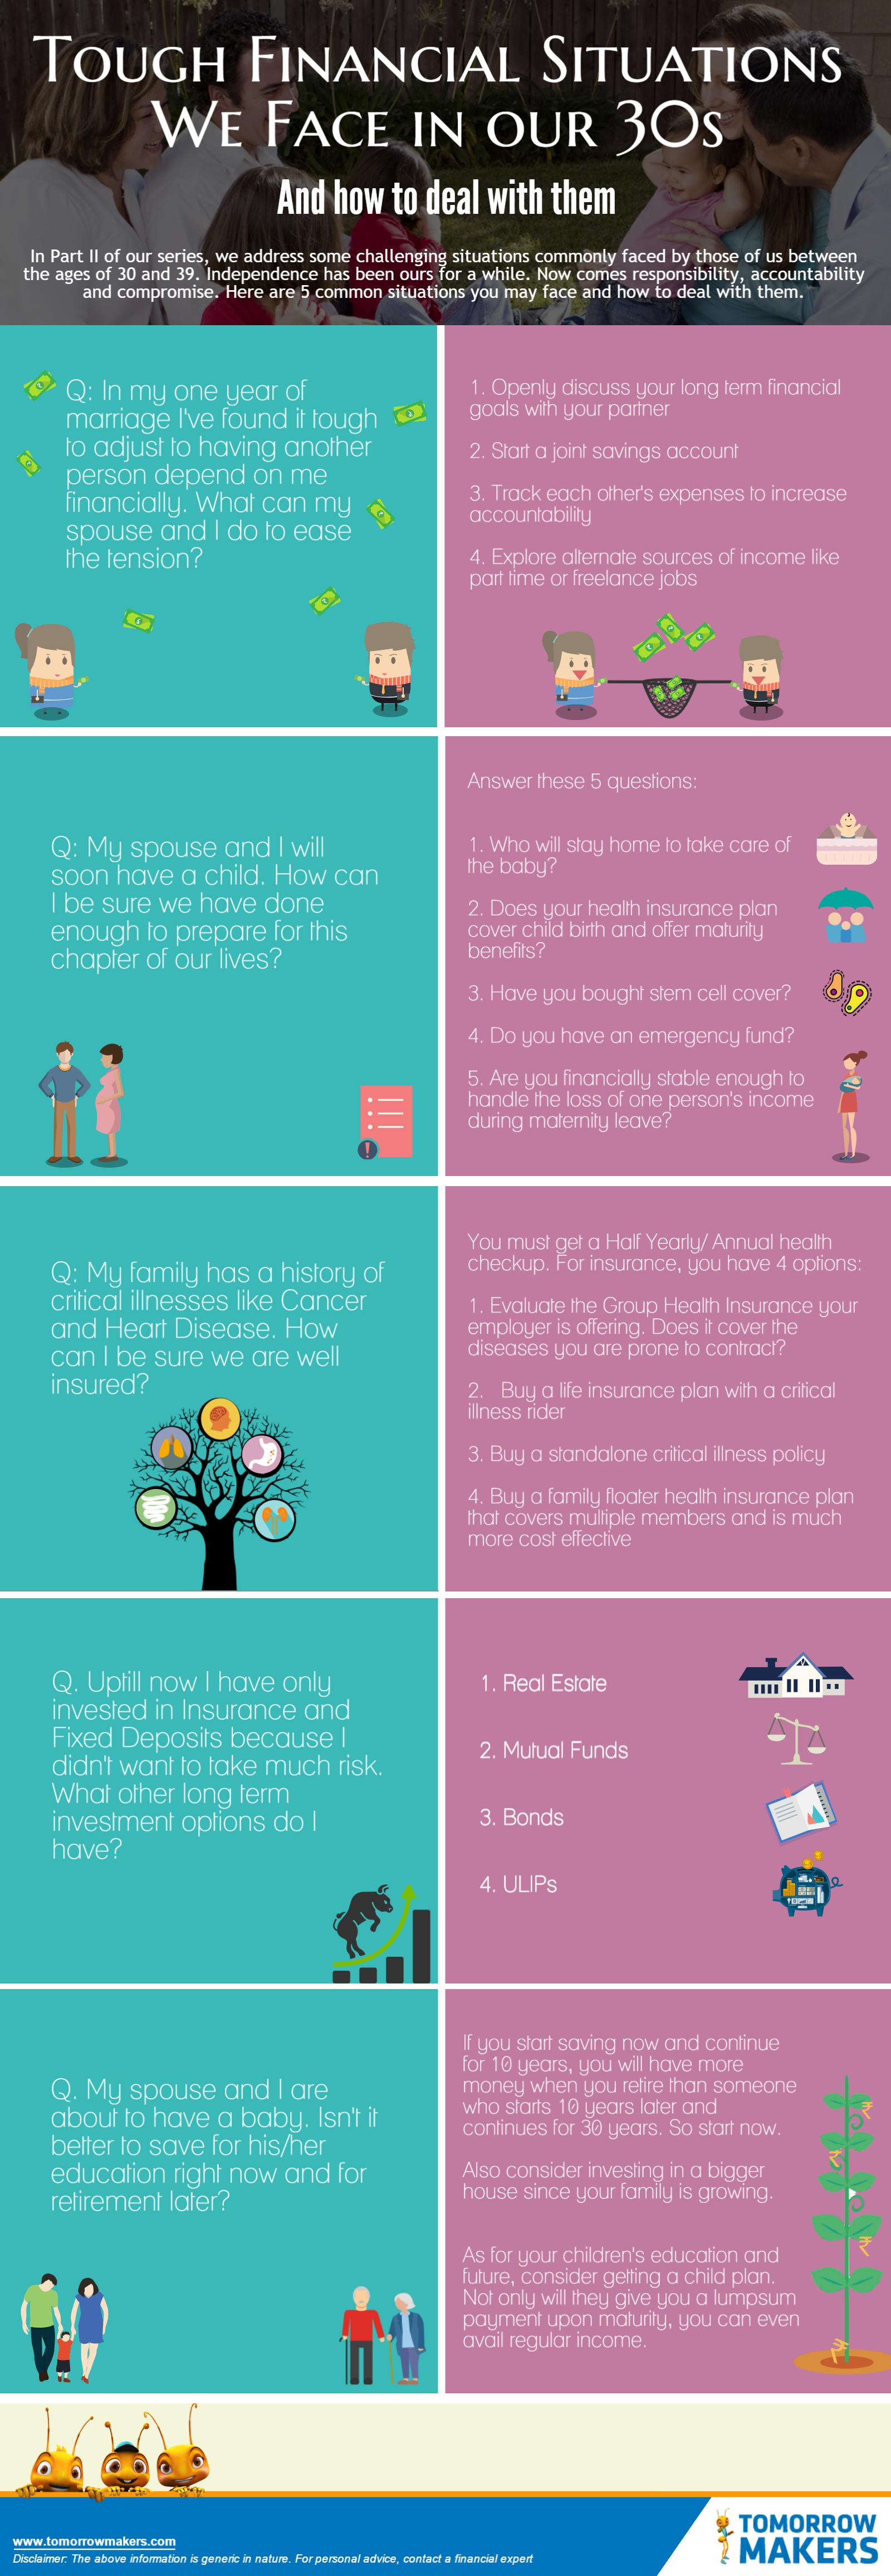 tough-financial-situations-we-face-in-our-30s-infographic